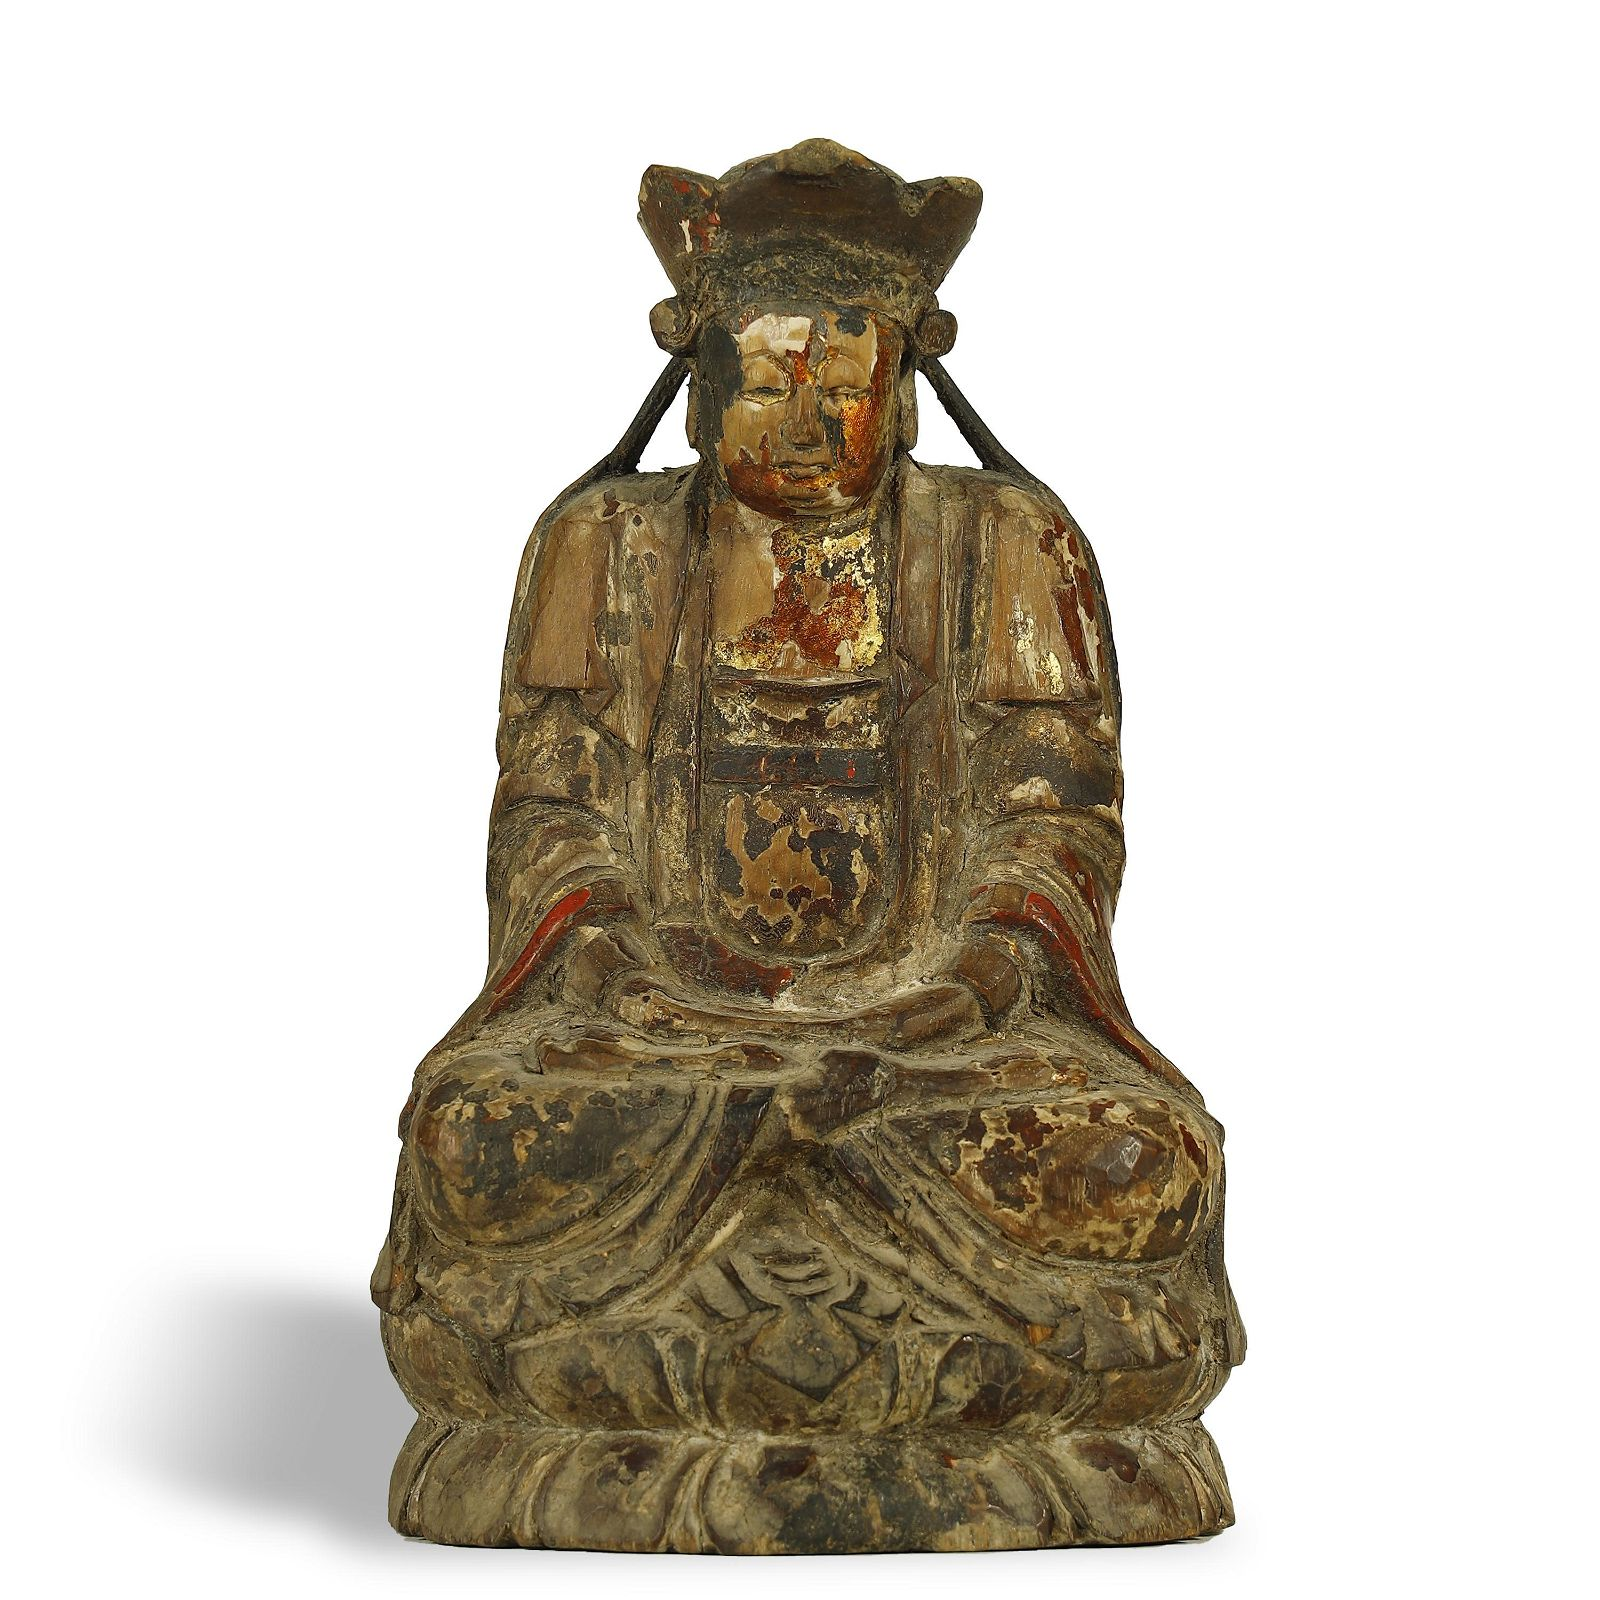 QING DYNASTY,GILT-LACQUERED WOOD BUDDHA STATUE